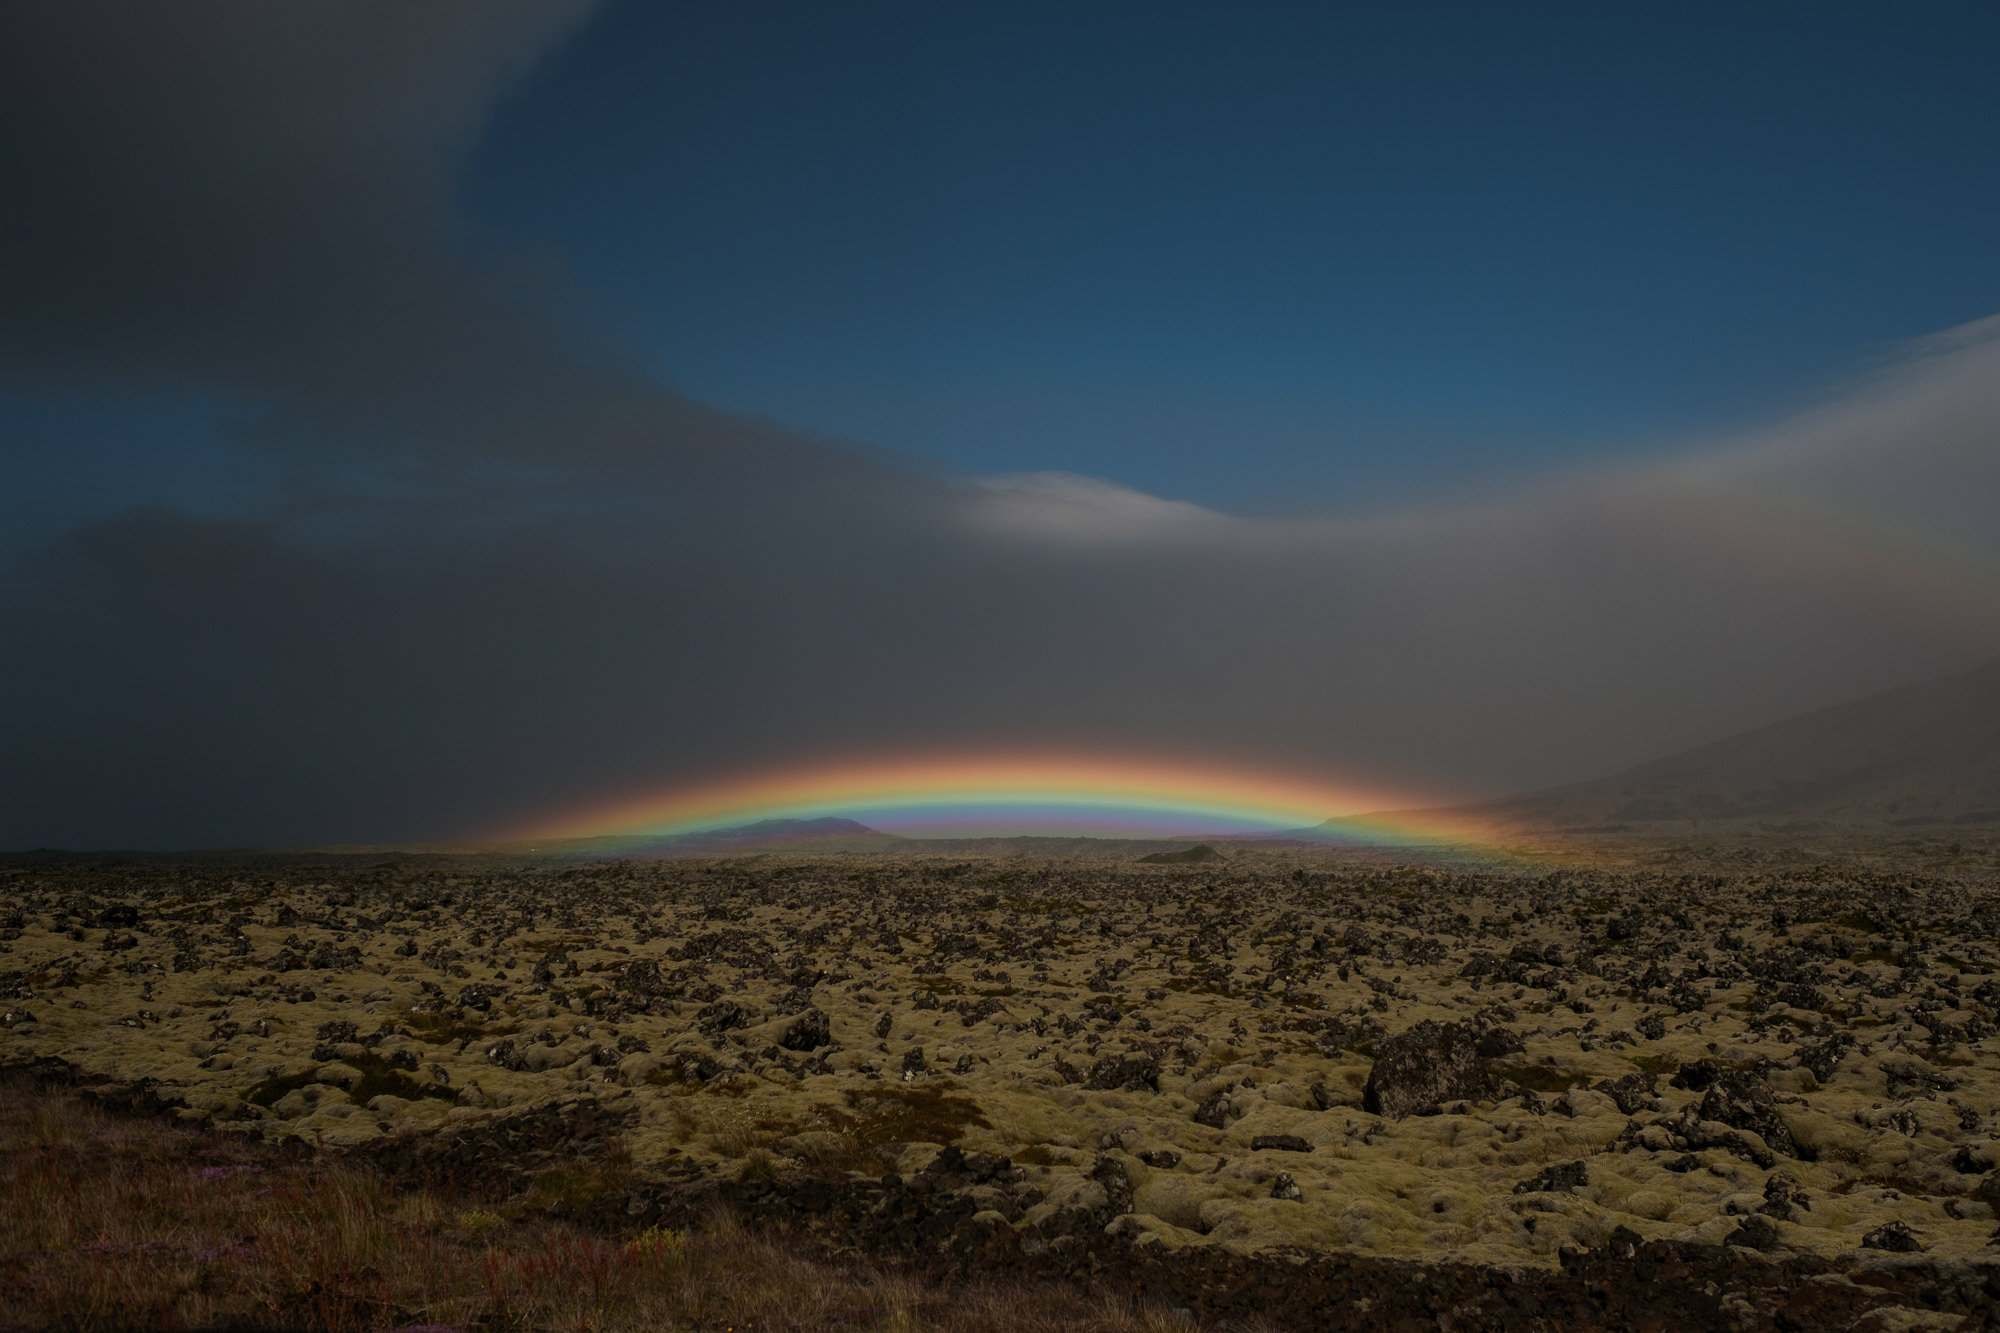 Rainbow lights up the tundra photo by Nordica Photography